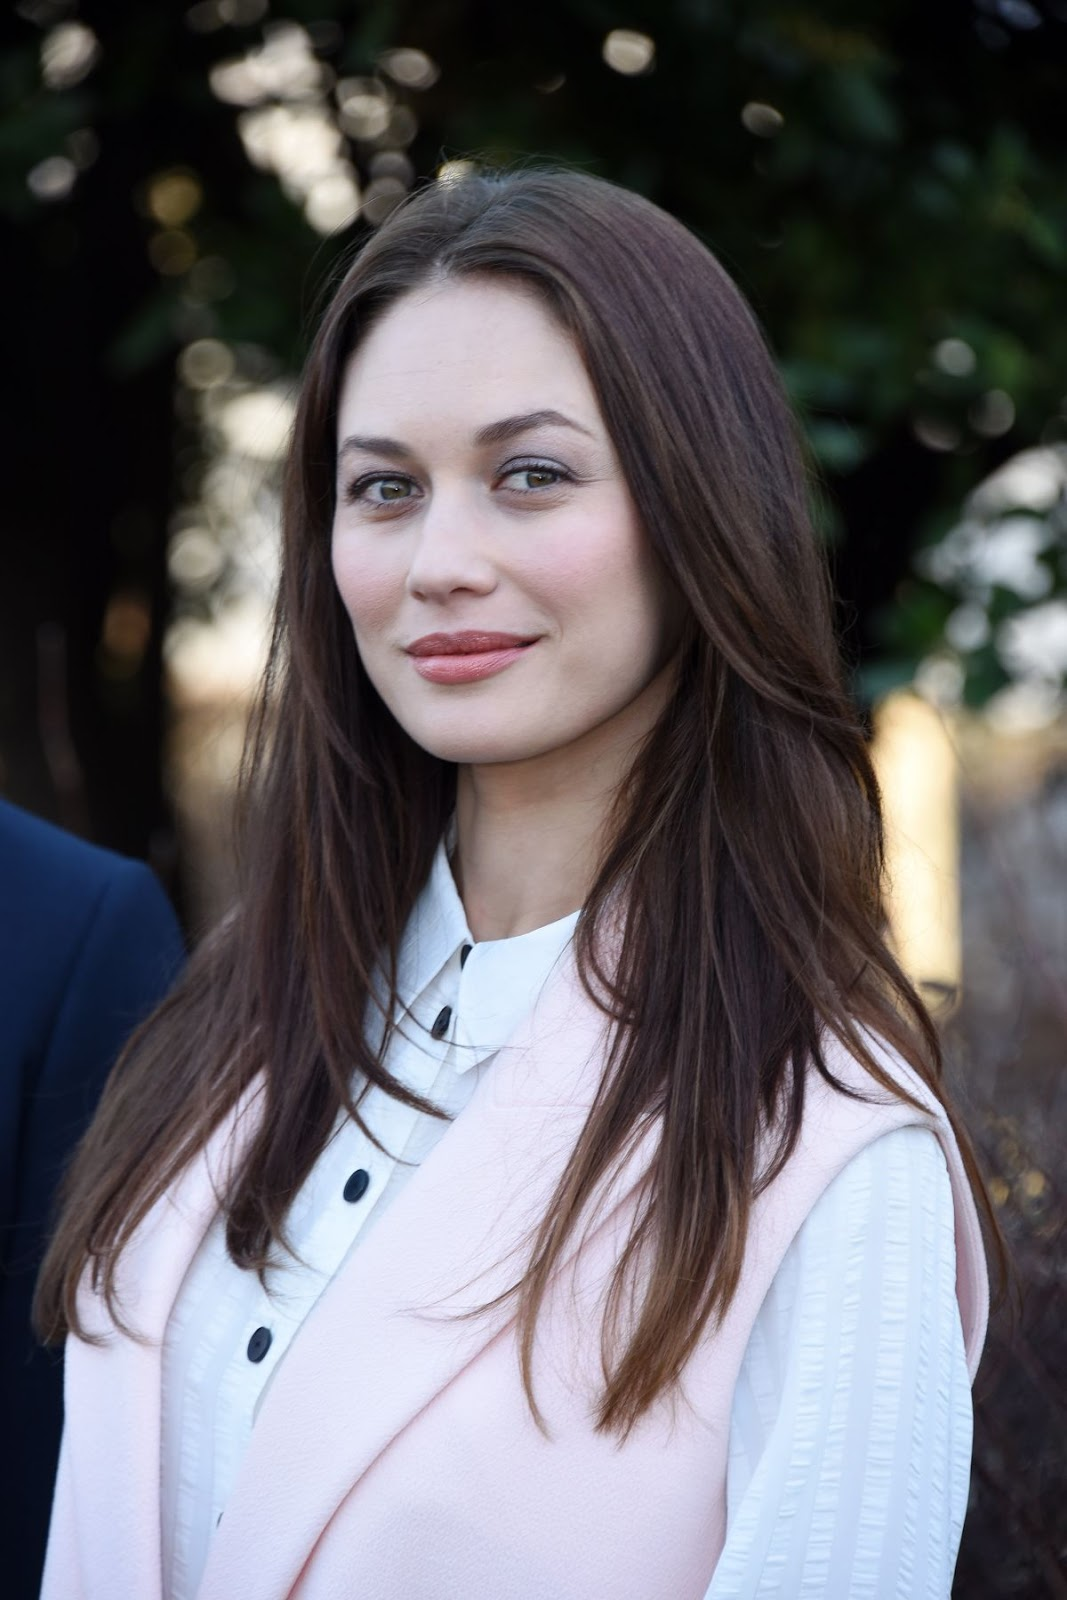 Olga Kurylenko at Christian Dior Fashion Show in Paris